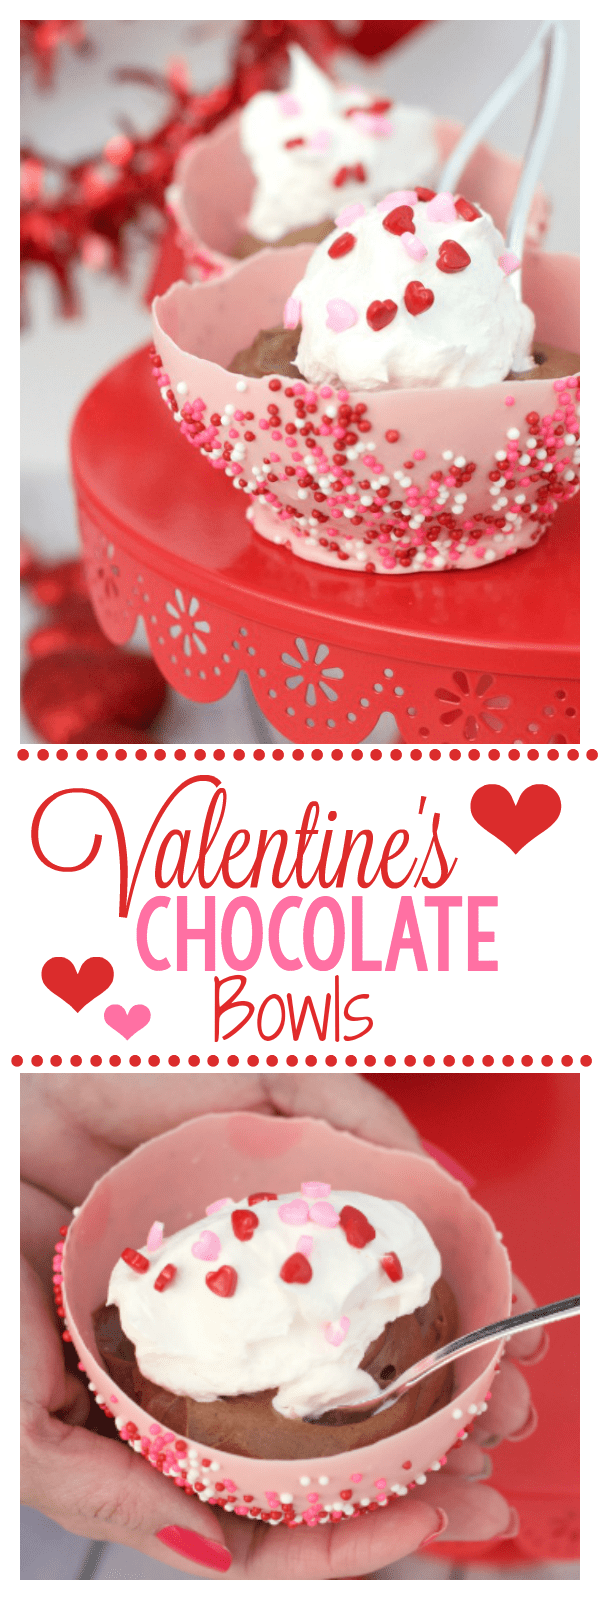 Valentine's Chocolate Bowls: How to Make a Chocolate Bowl using a balloon. This is a fun way to spice up your Valentine's Day dessert. These chocolate bowls are yummy, fun, and festive! #valentinesdaydessert #fundessertidea #valentinedessert #chocolatebowls #howtomakechocolatebowls